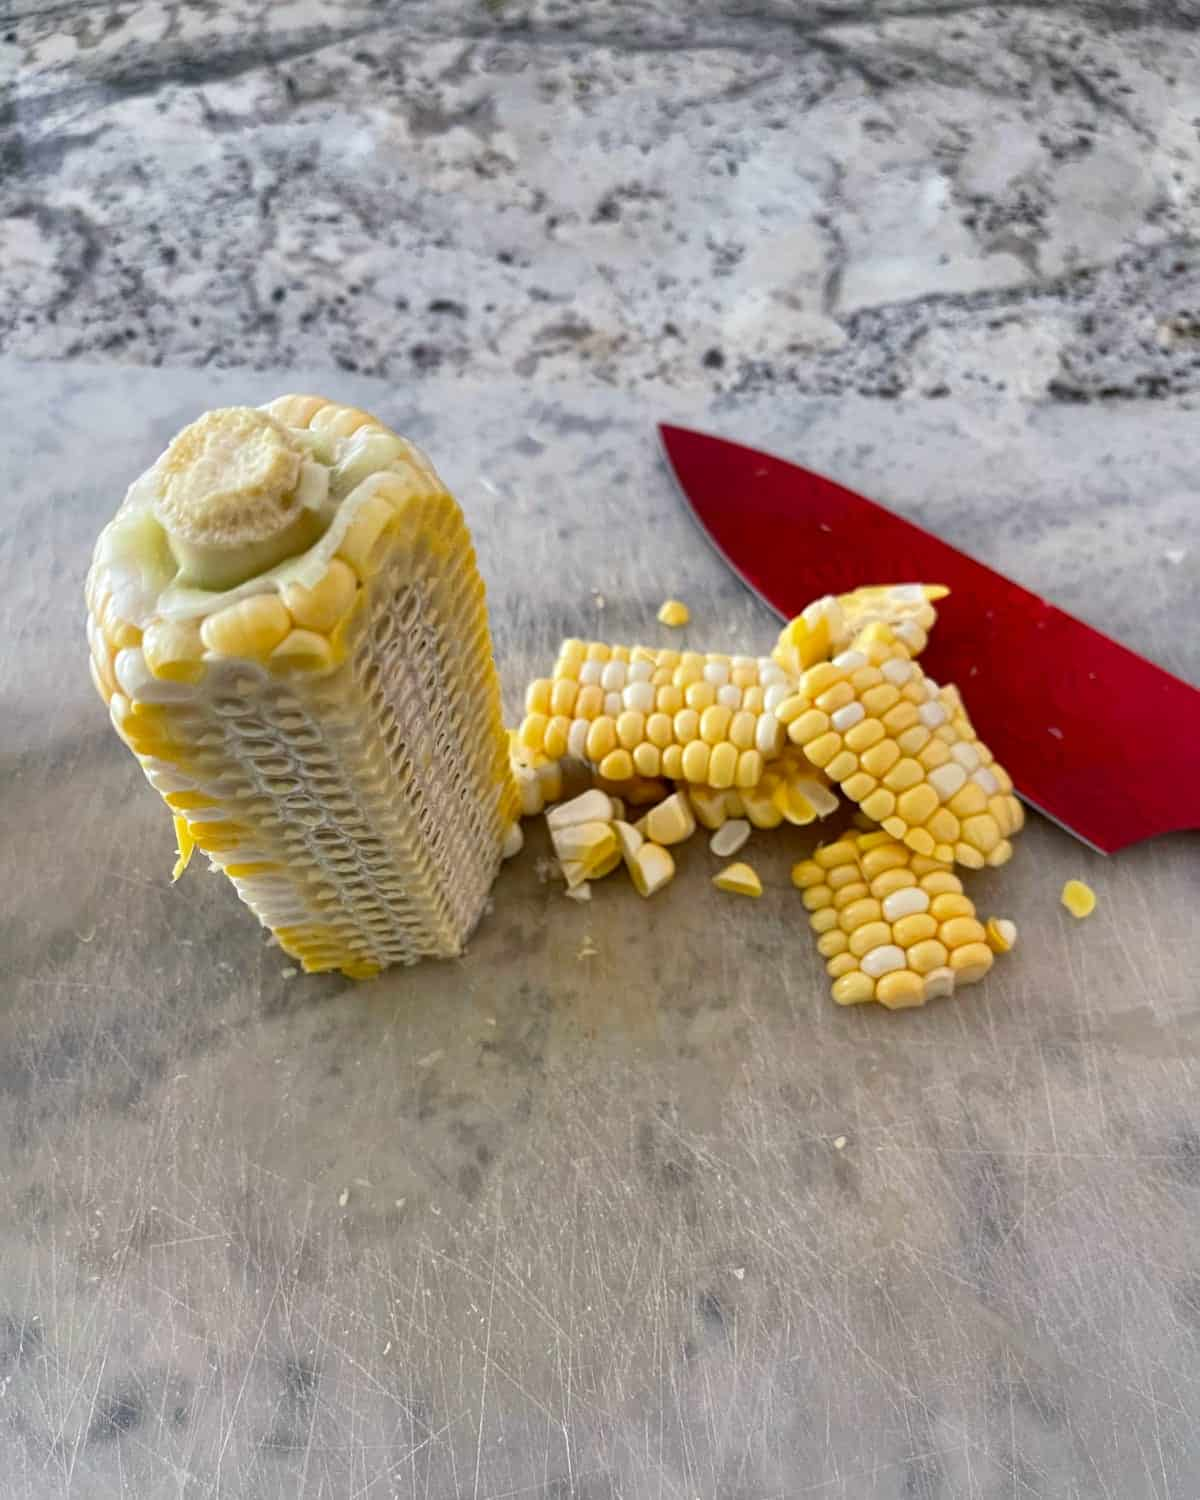 Removing corn kernels from half of corn cob with red knife.